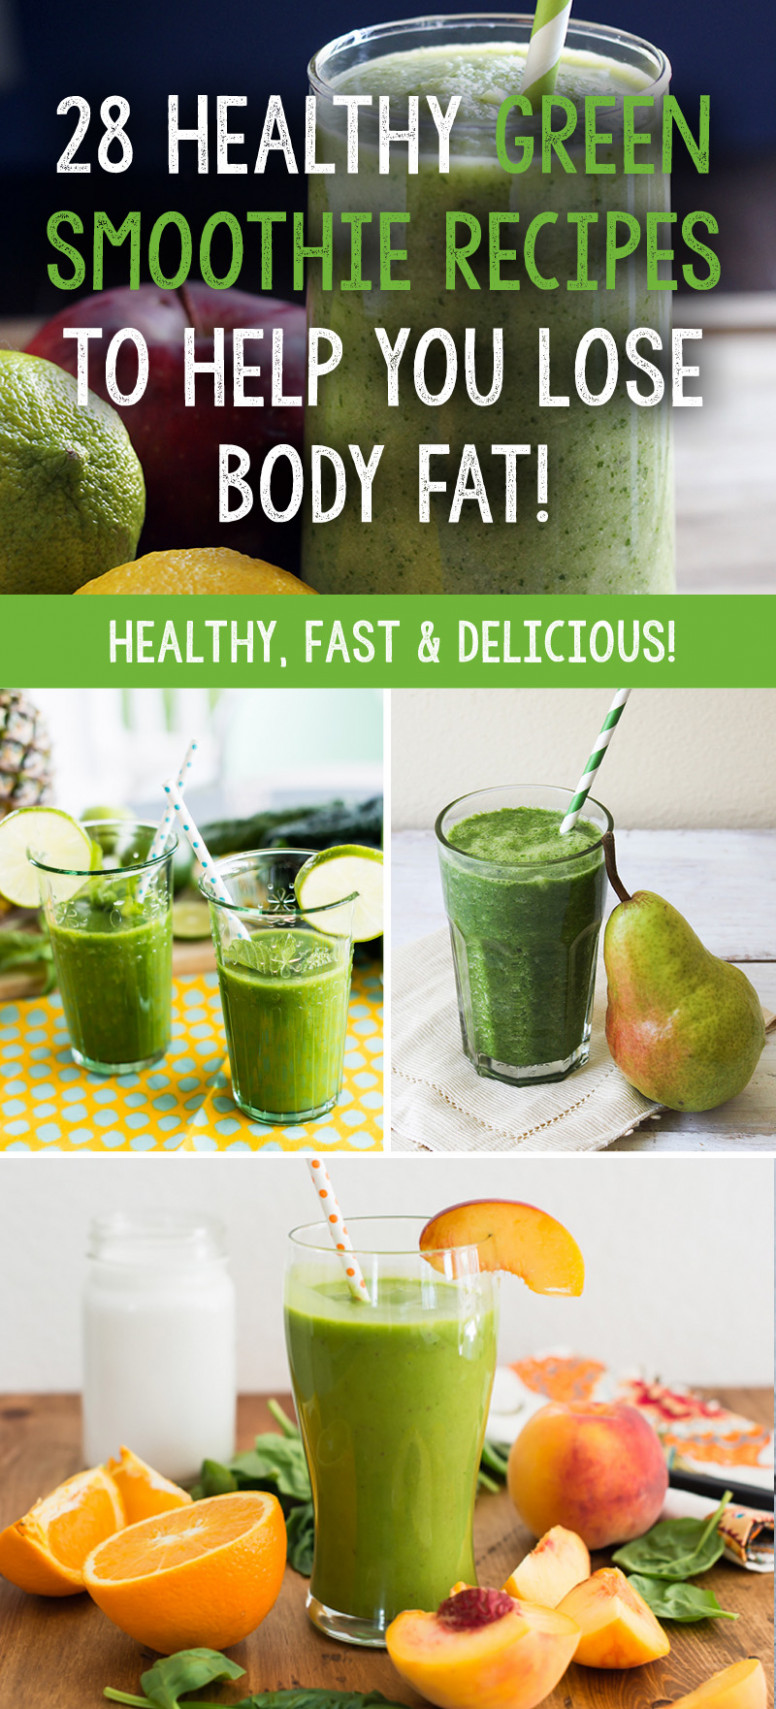 28 Healthy Green Smoothie Recipes To Help You Lose Body Fat! - Recipes Healthy Smoothies